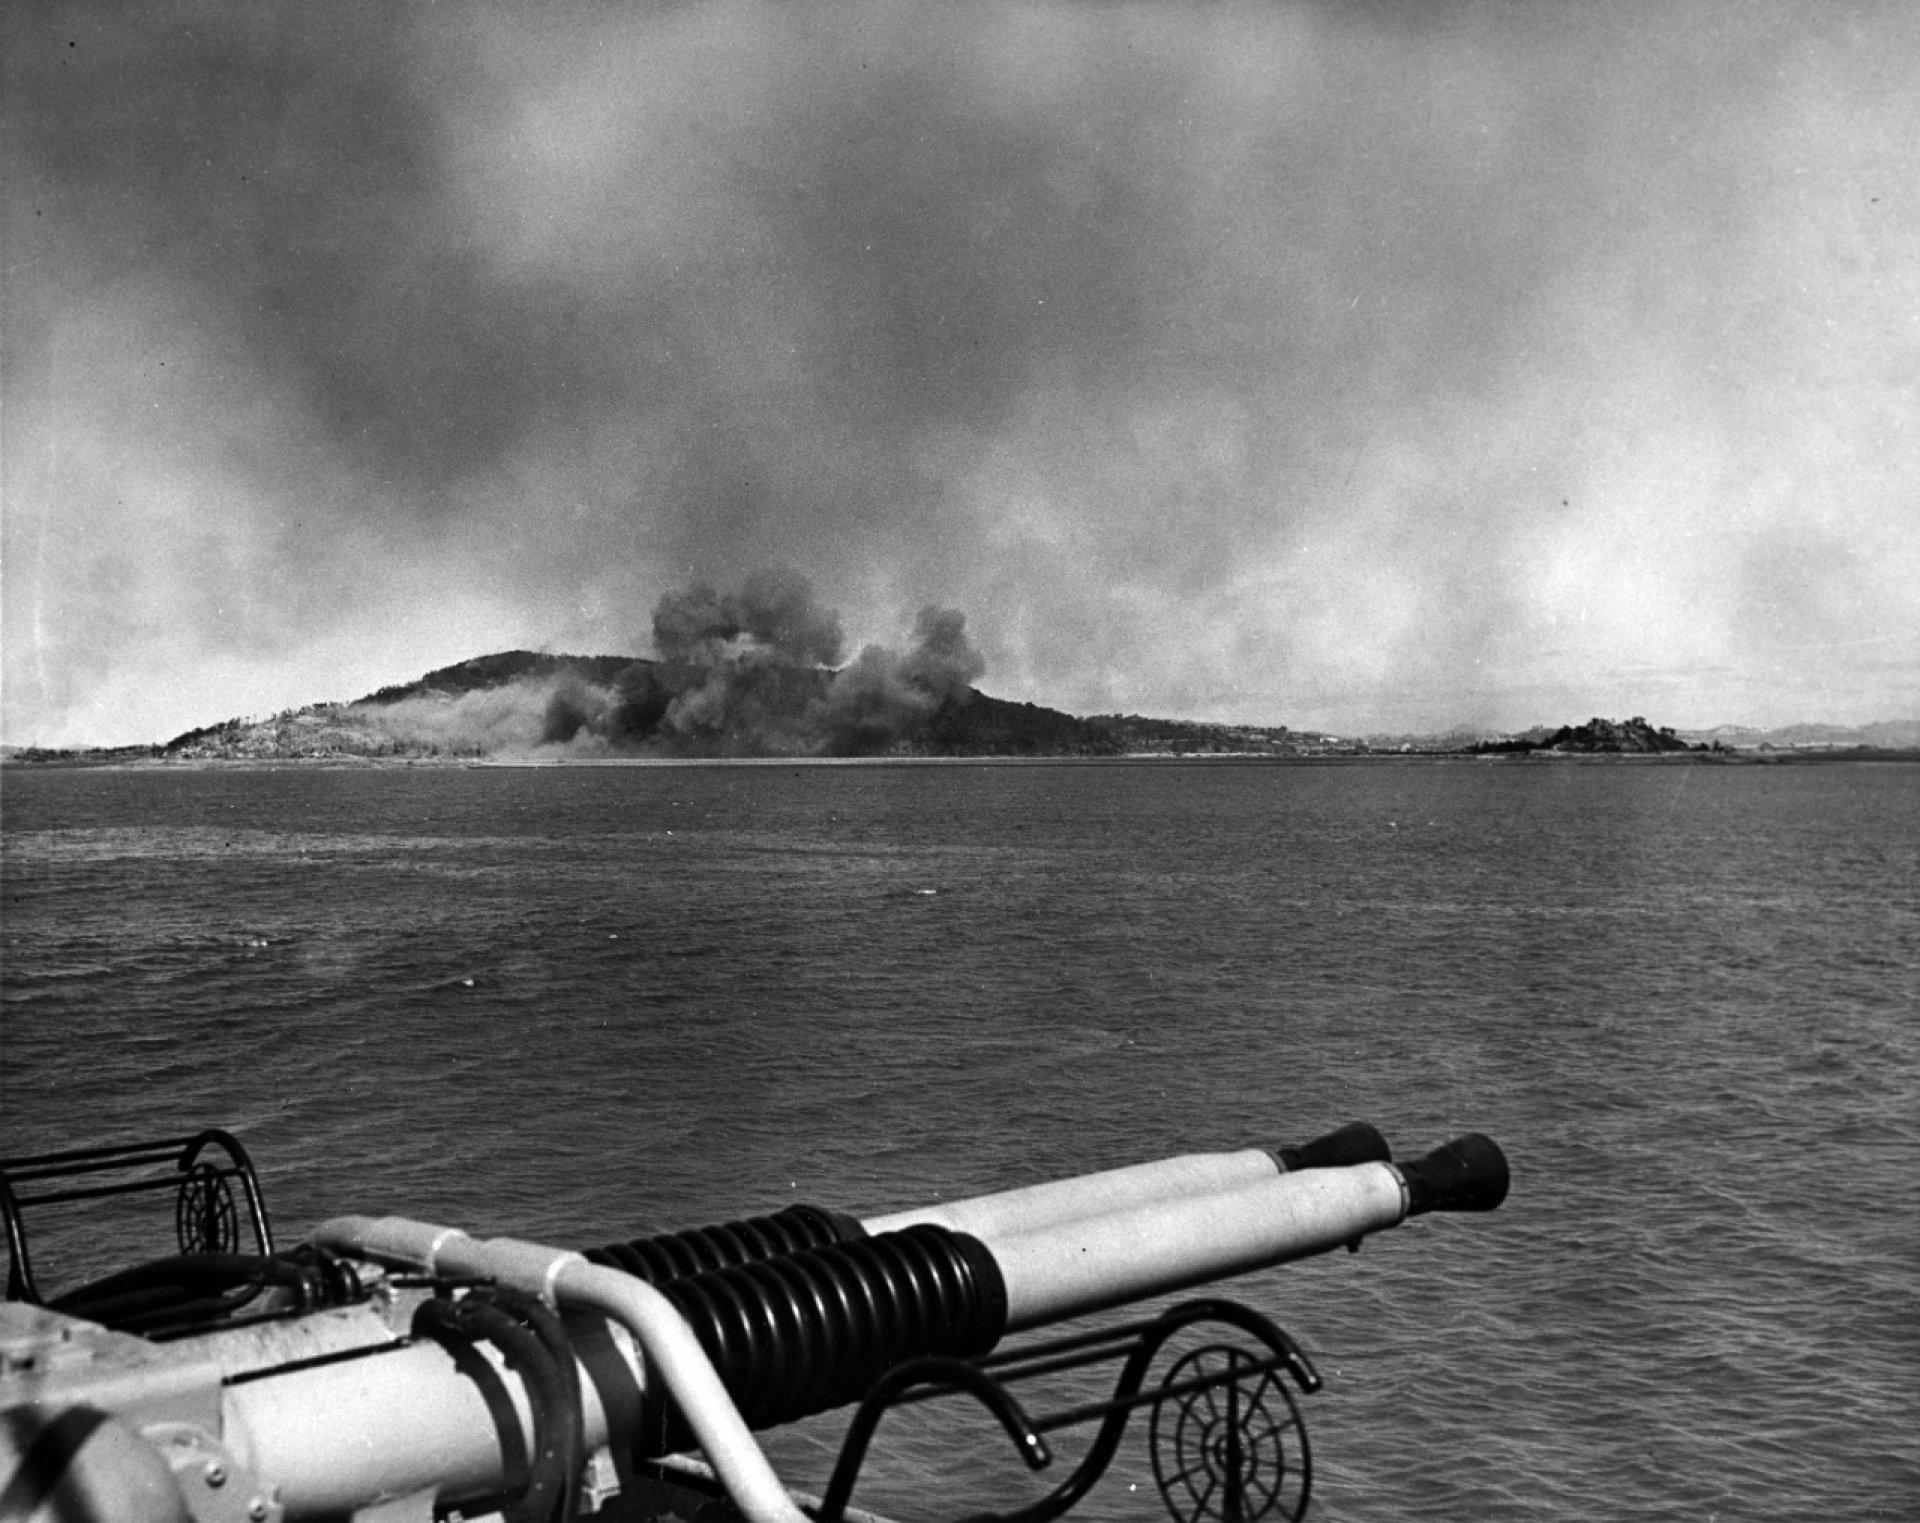 A black and white image of an island with smoke rising in the distance.